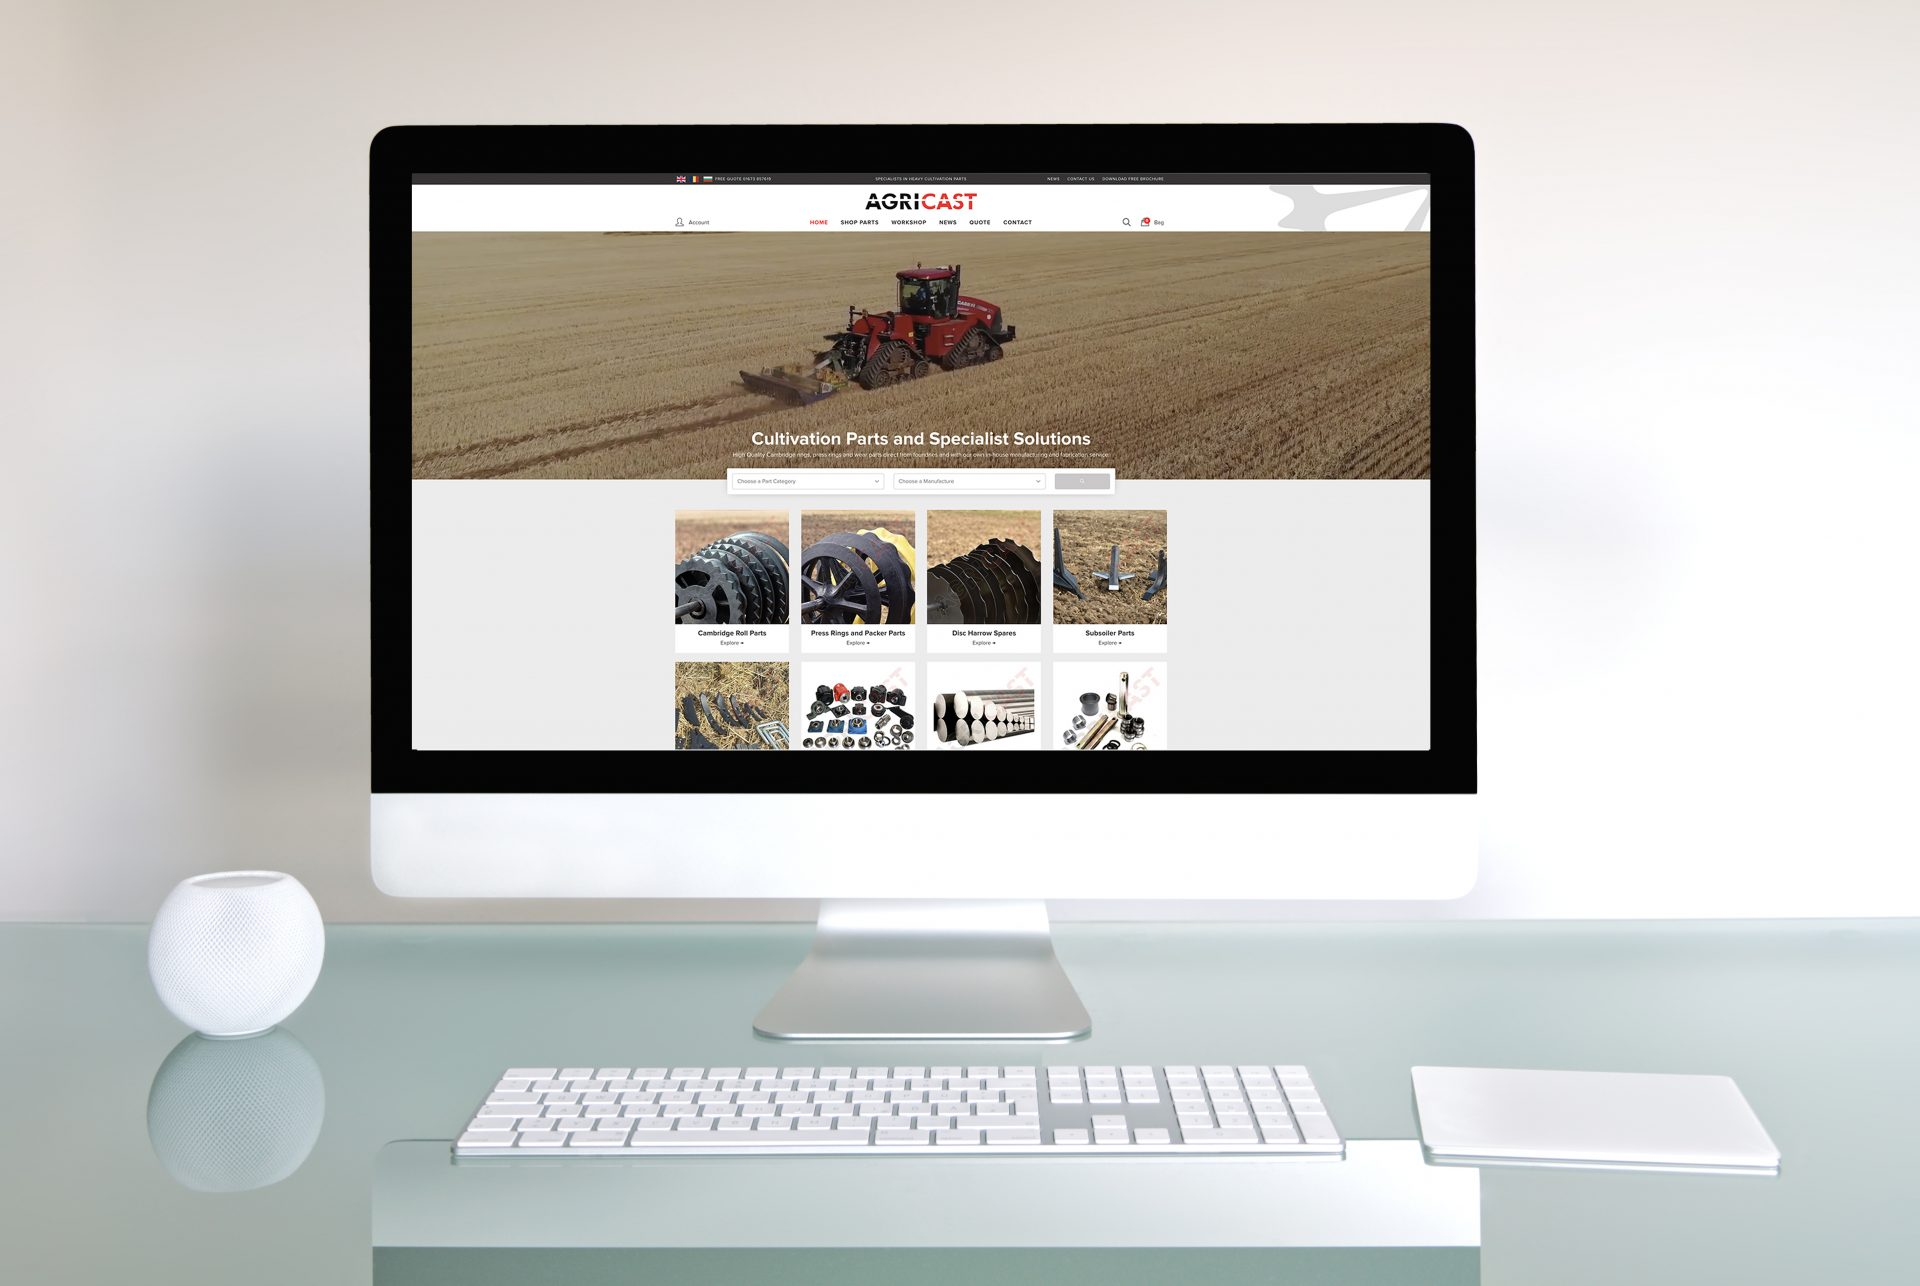 Agricast's Investment Continues With A New Website